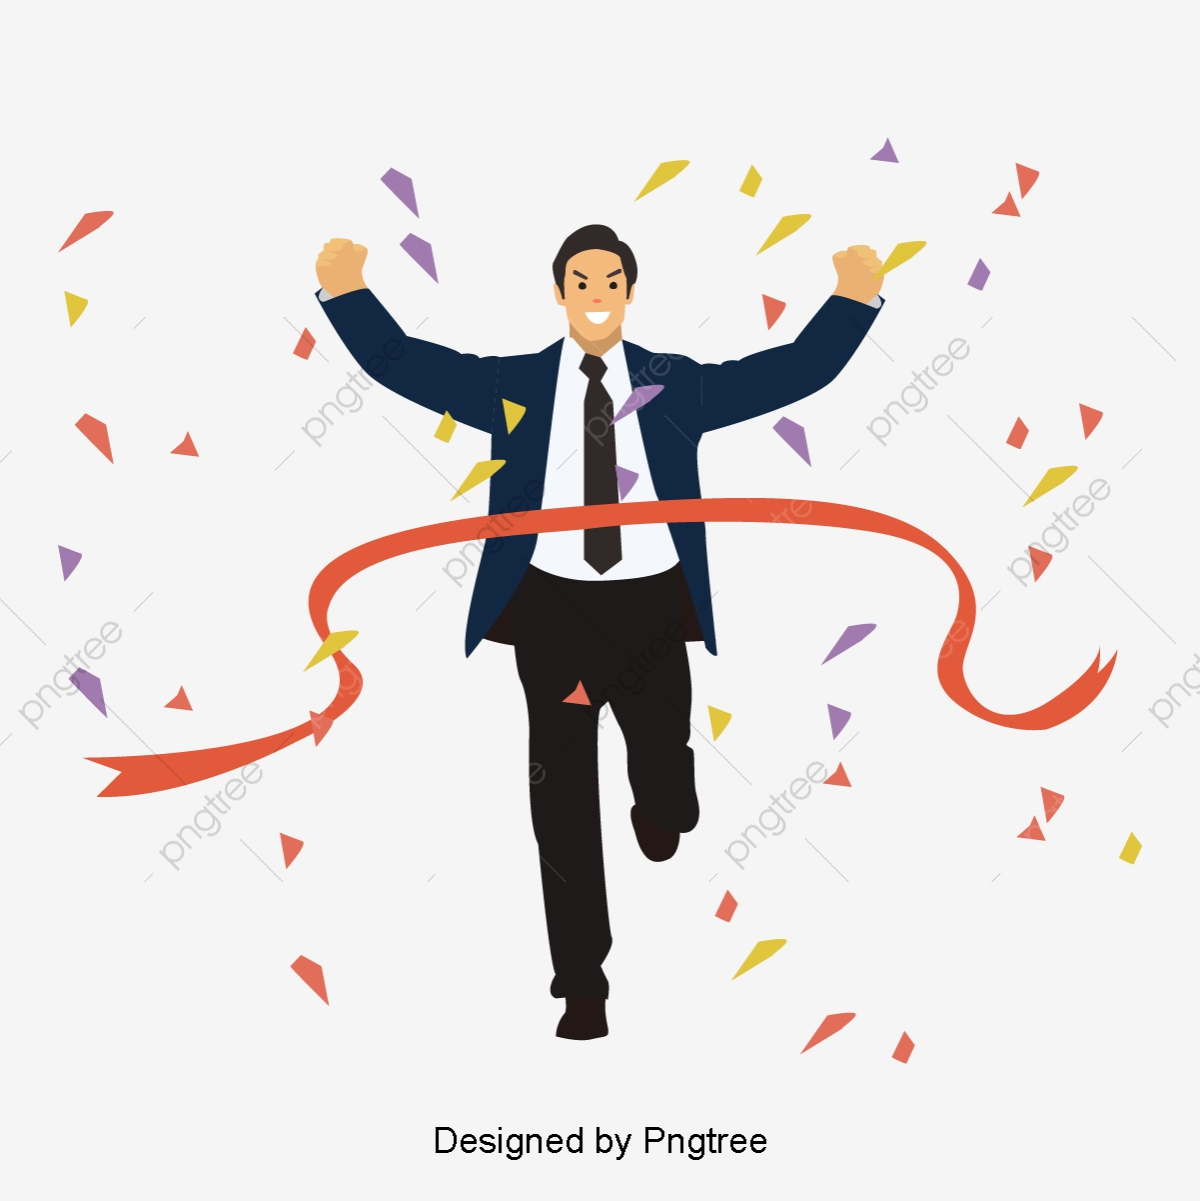 cartoon character success material cartoon hand painted character png and vector with transparent background for free download https pngtree com freepng cartoon character success material 3687115 html